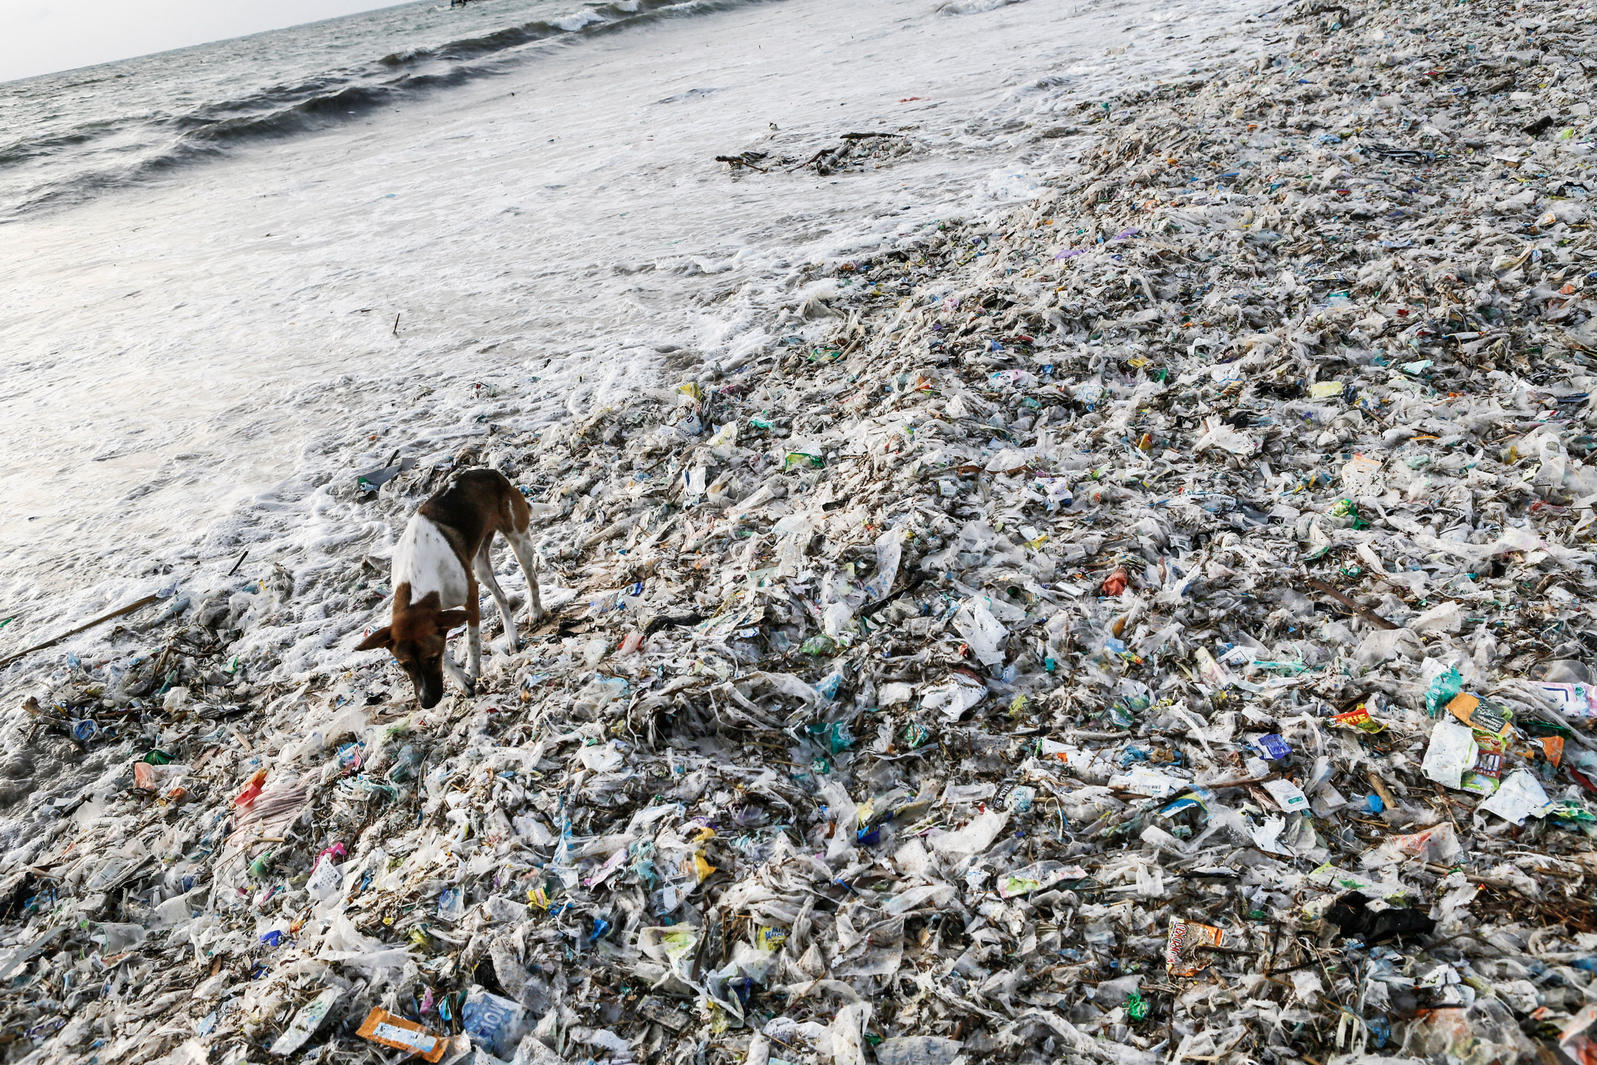 Plastic washes up at Kedonganan Beach in Indonesia. Billions of pounds of plastic pollute the world's oceans and harm wildlife. Putu Sayoga/Redux